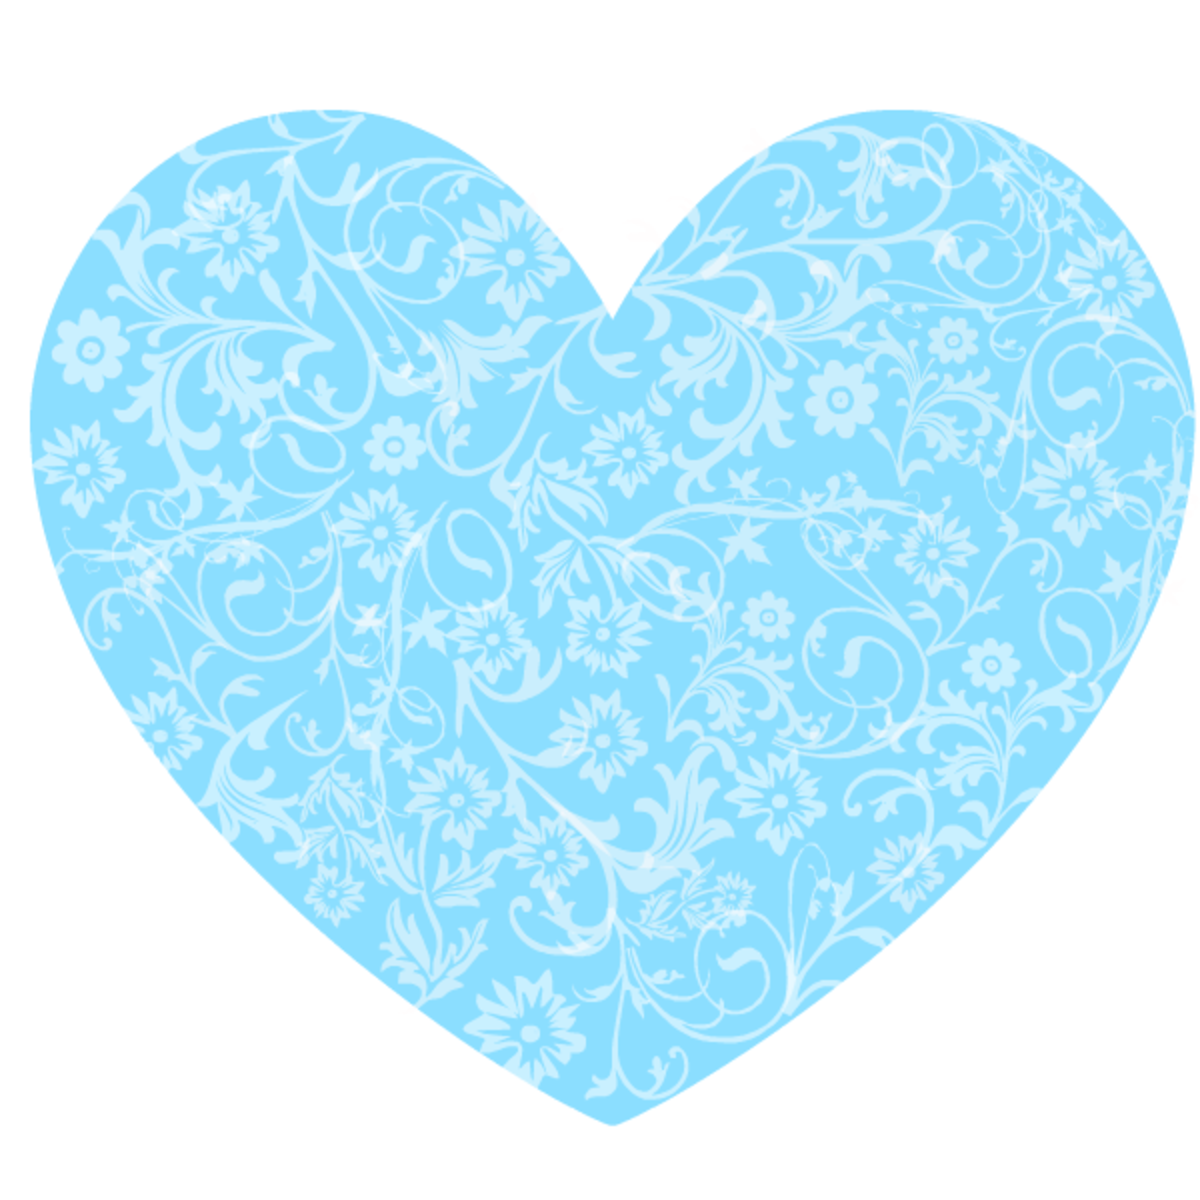 Light blue floral heart clipart